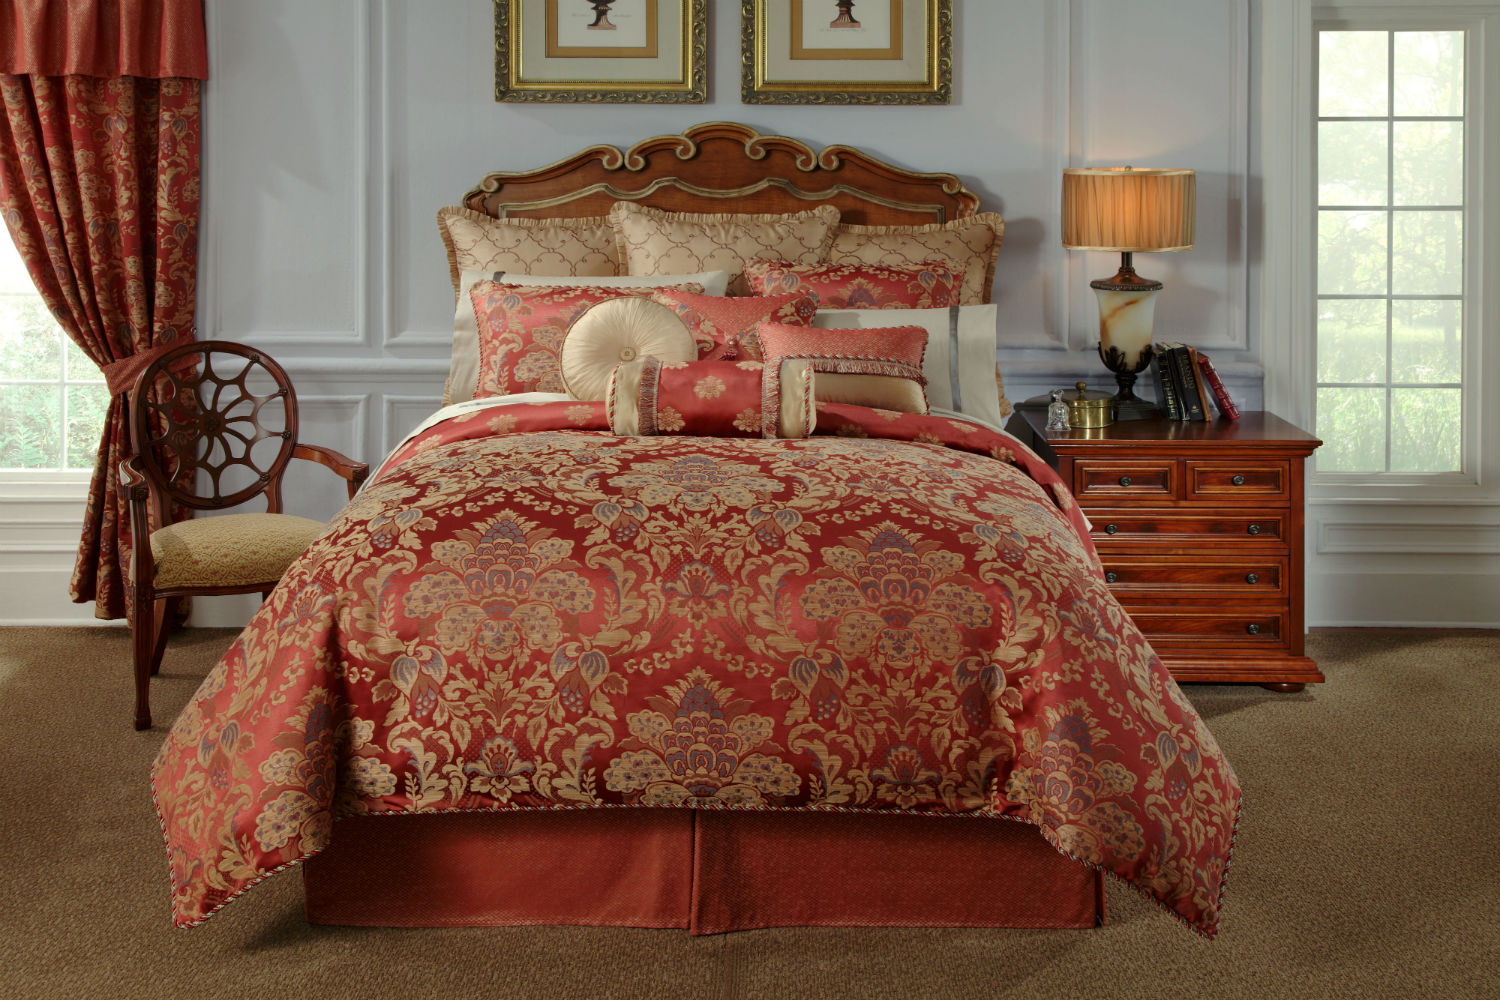 Hamilton By Waterford Luxury Bedding Beddingsuperstore Com